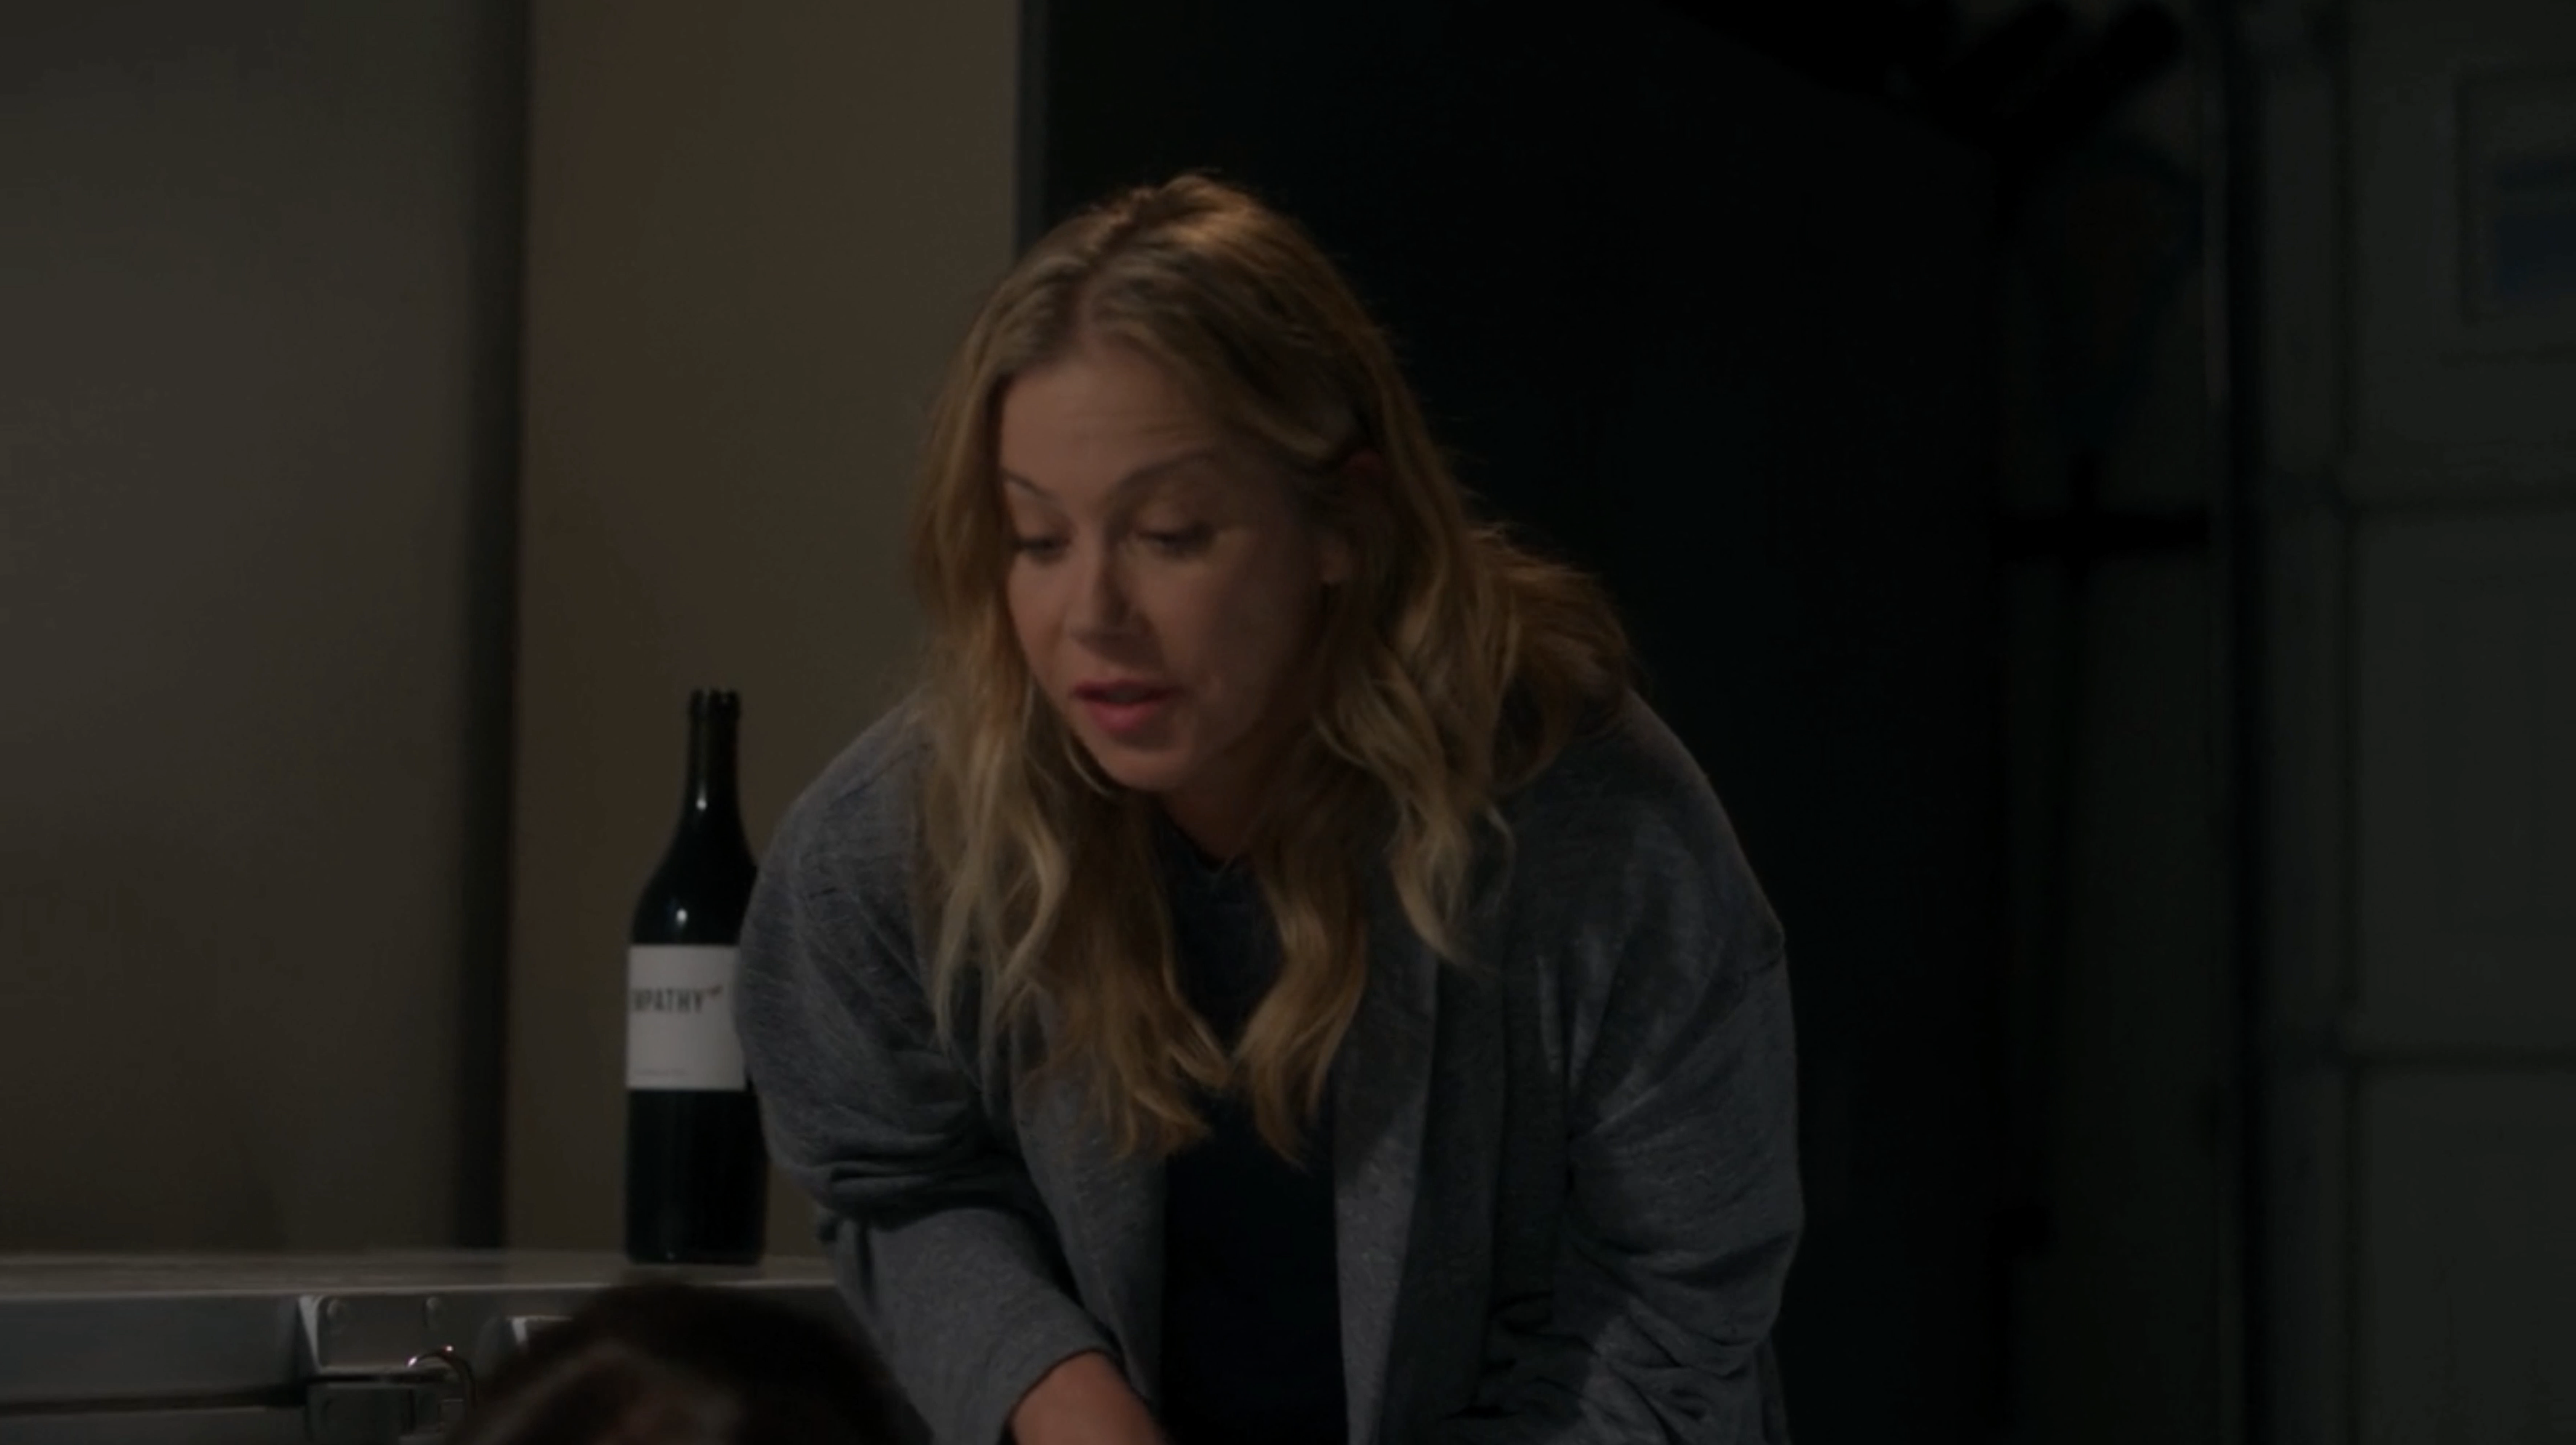 Christina Applegate in Dead to Me with Empathy Wine in Background